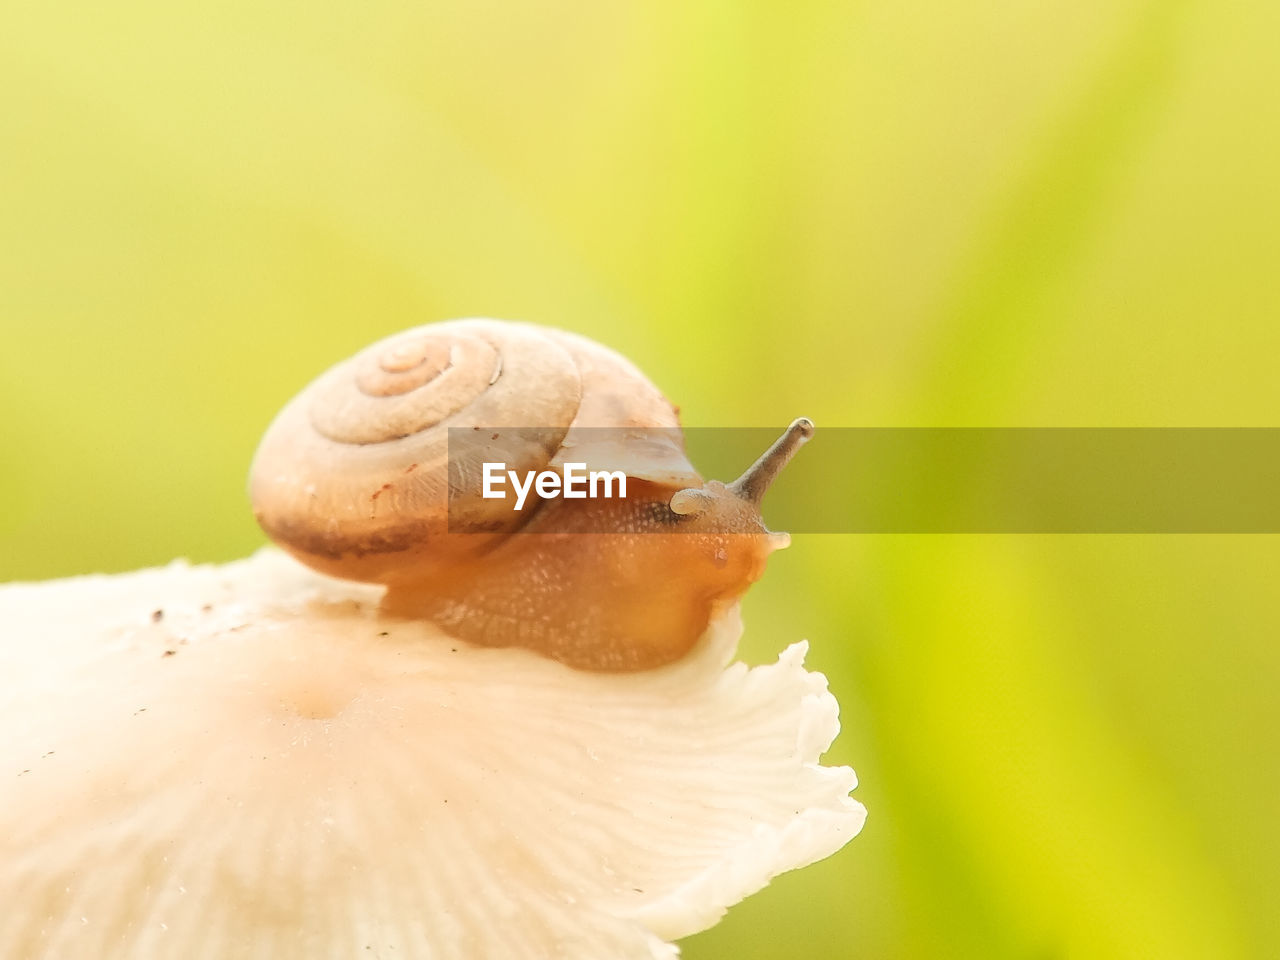 close-up, animal wildlife, mollusk, gastropod, focus on foreground, invertebrate, snail, animal themes, animals in the wild, animal, one animal, no people, fragility, vulnerability, selective focus, shell, nature, animal antenna, freshness, plant